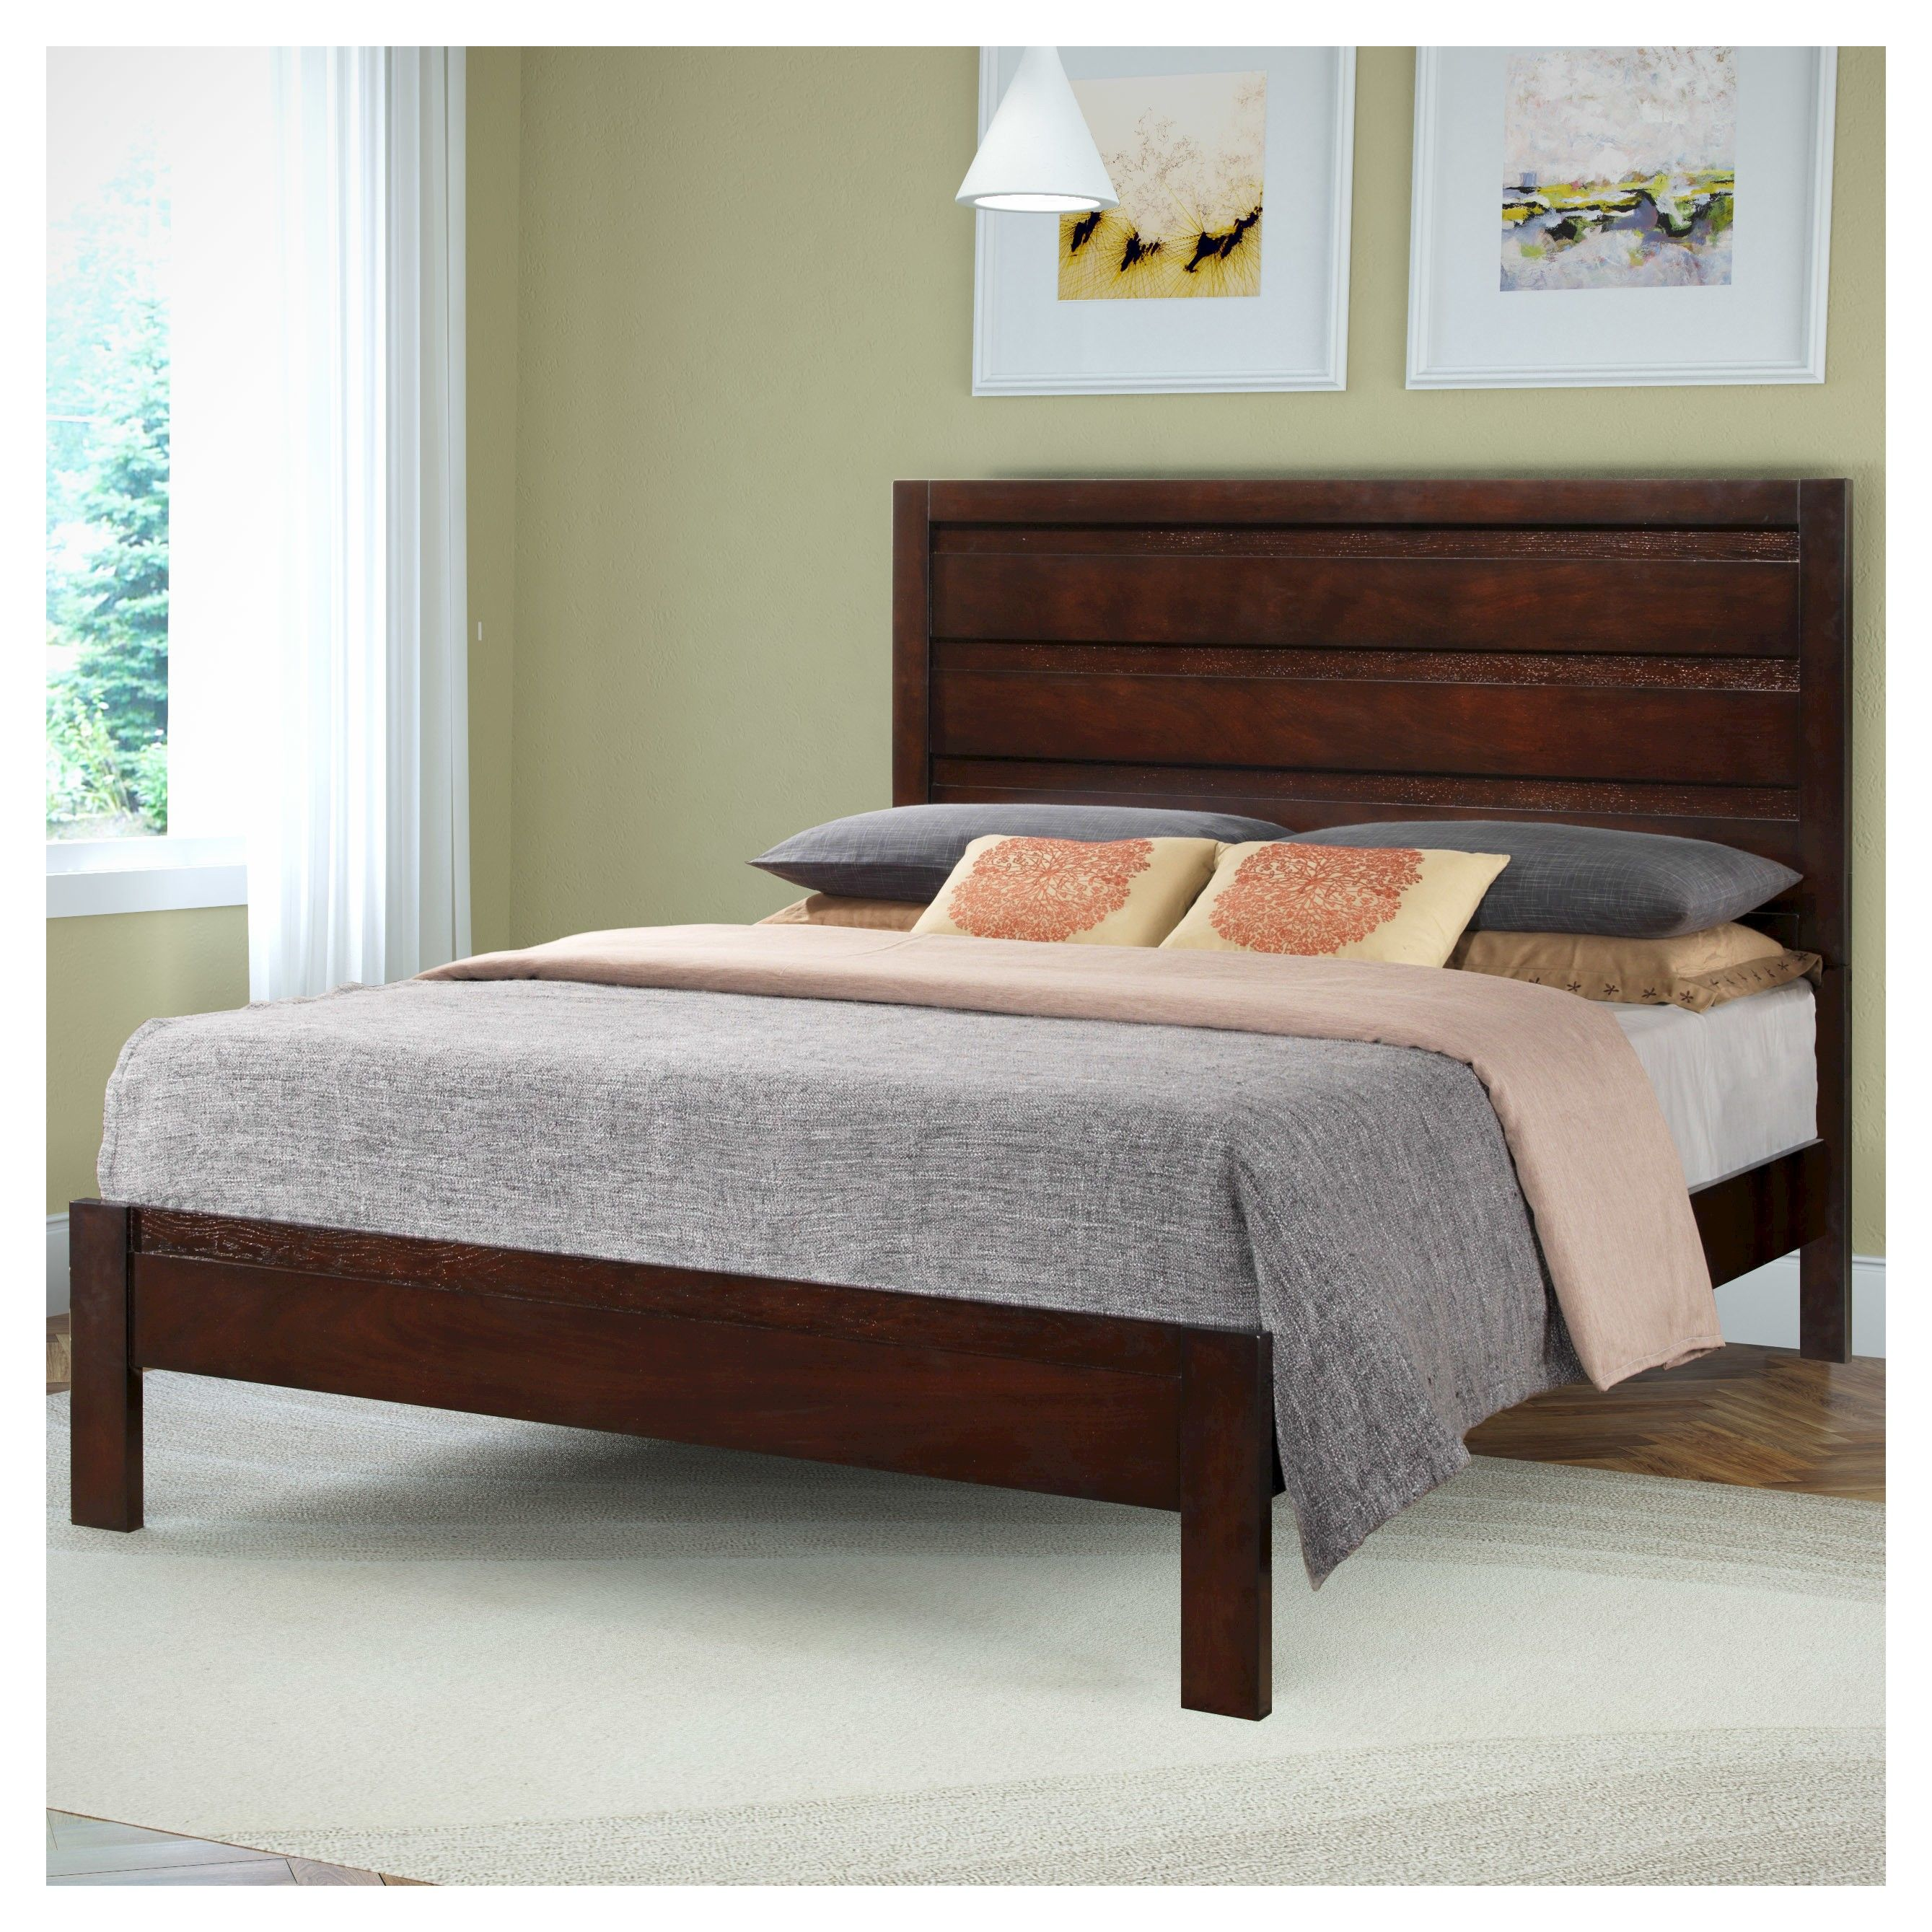 Add timeless style to your bedroom with the BLH-230-Q queen sized bed